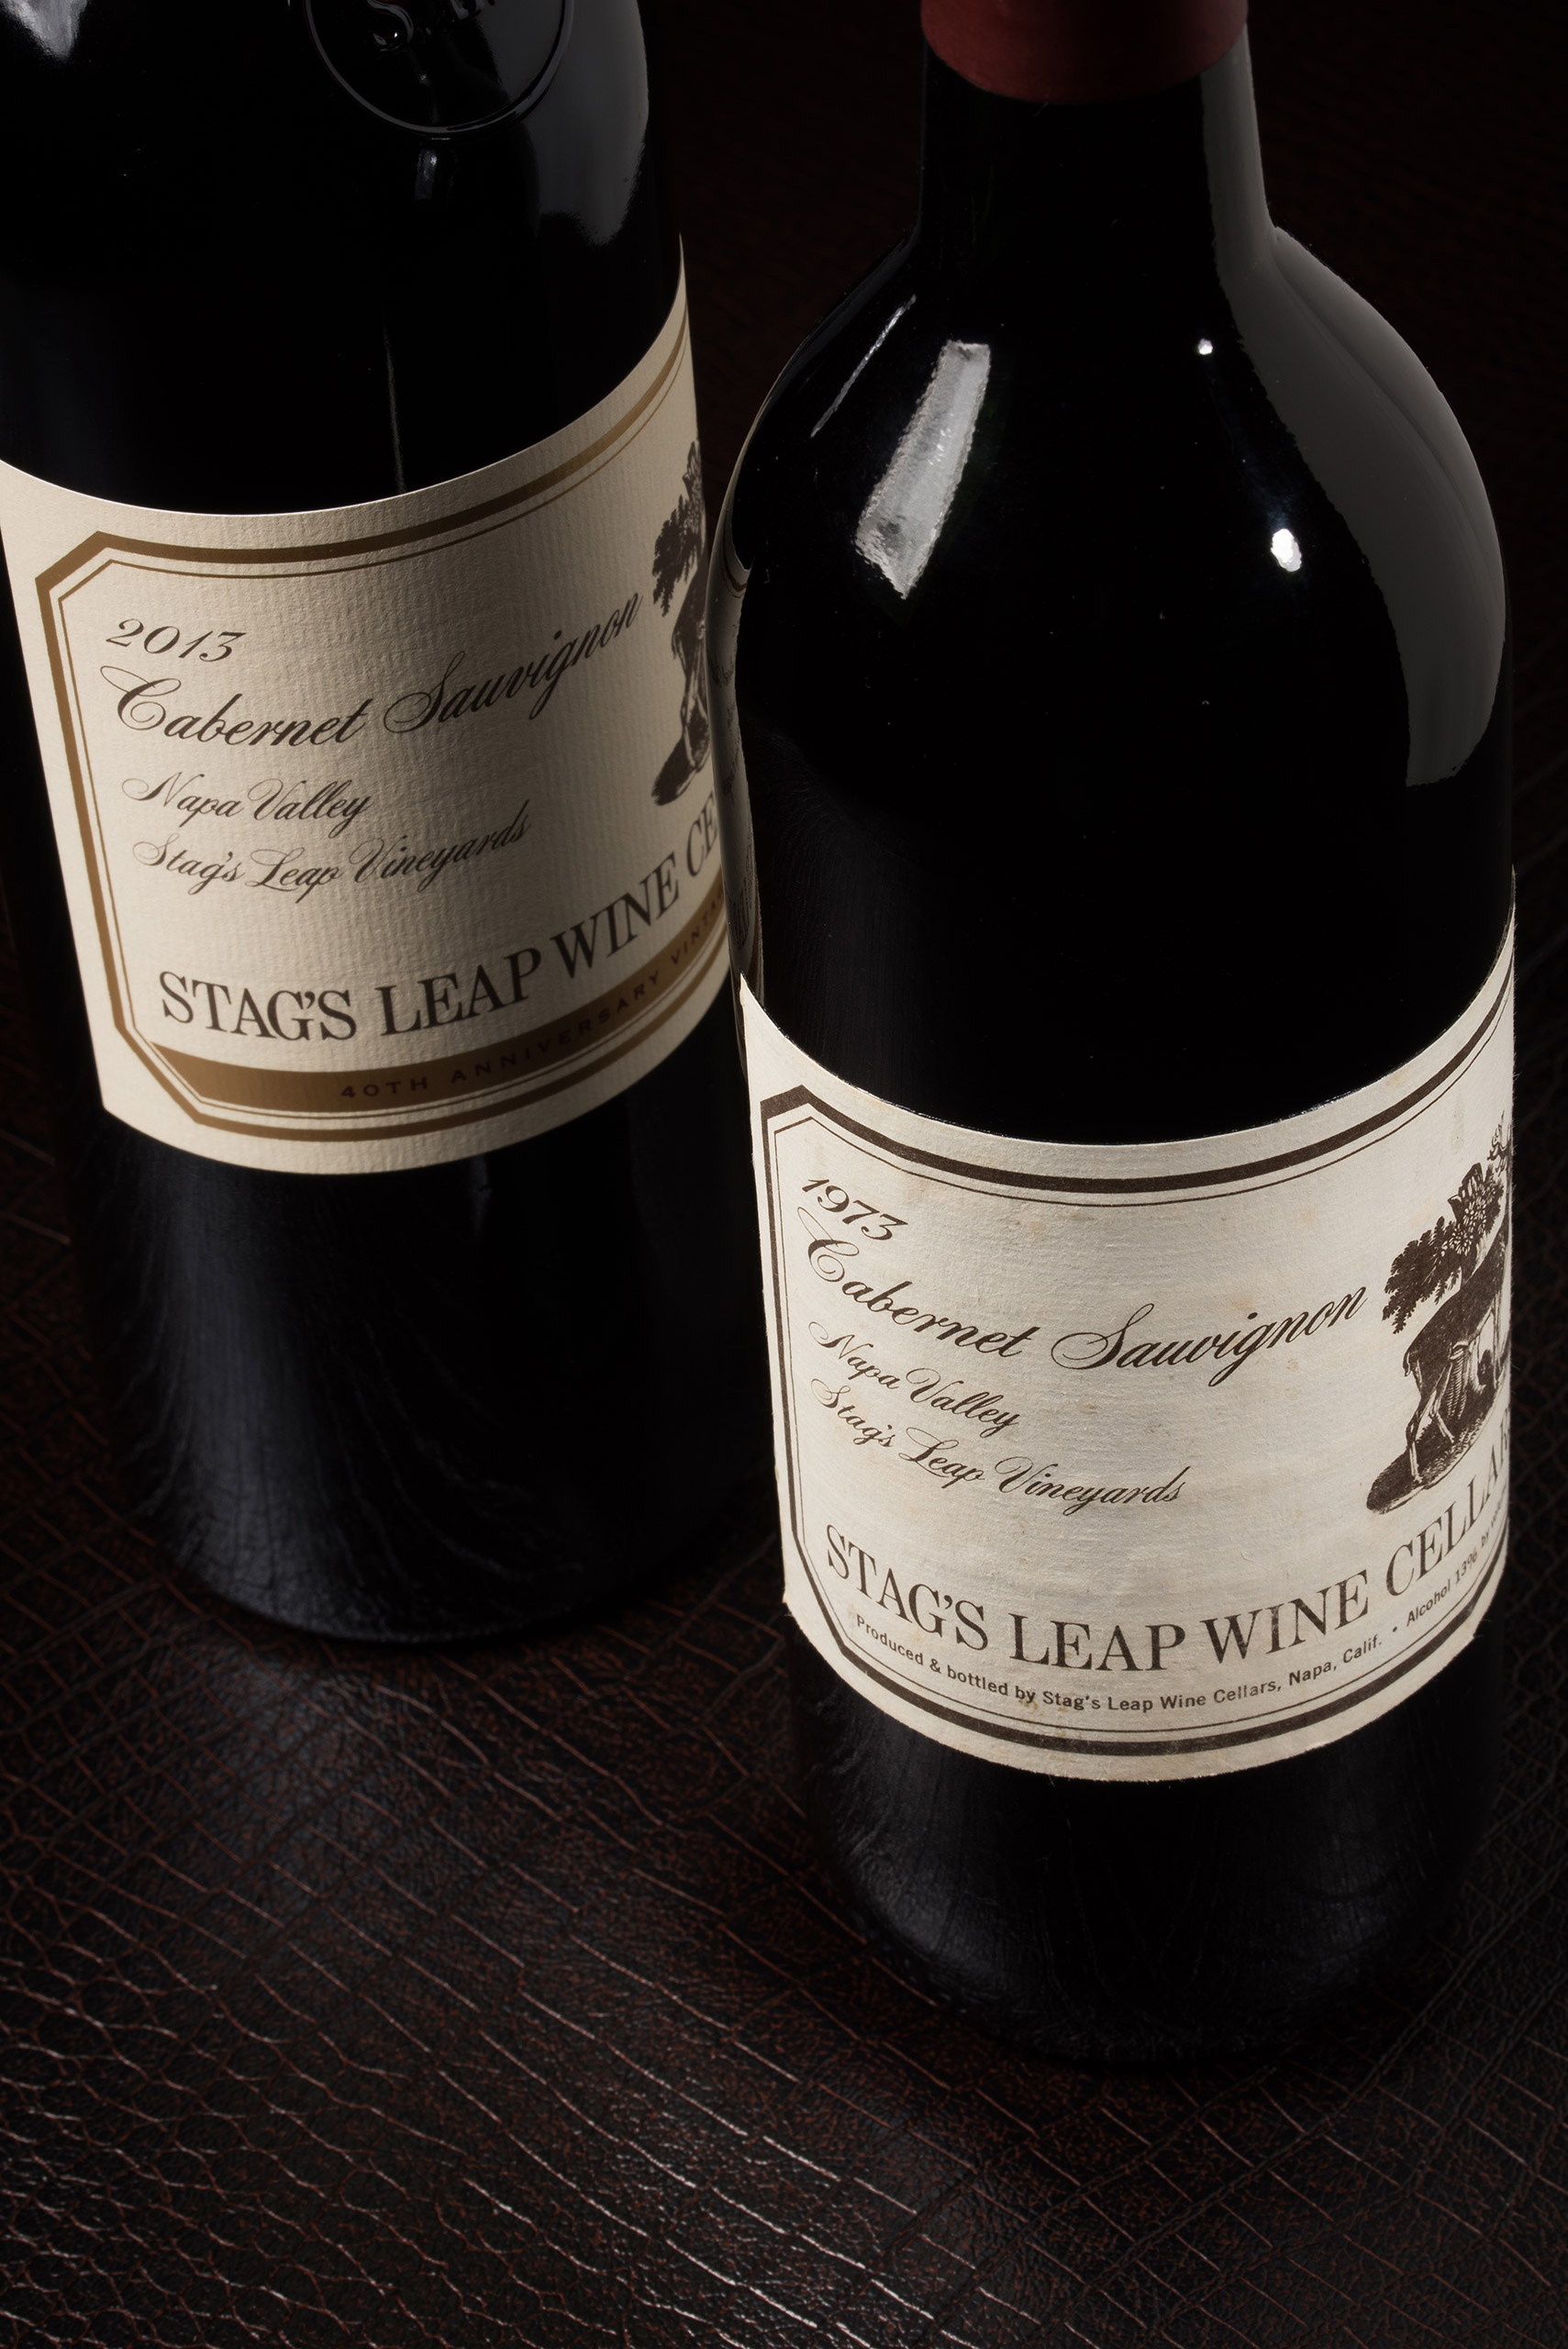 2013 S.L.V. Cabernet Sauvignon in the 40th Anniversary commemorative bottling – next to the 1973 S.L.V. that won the Paris Tasting.